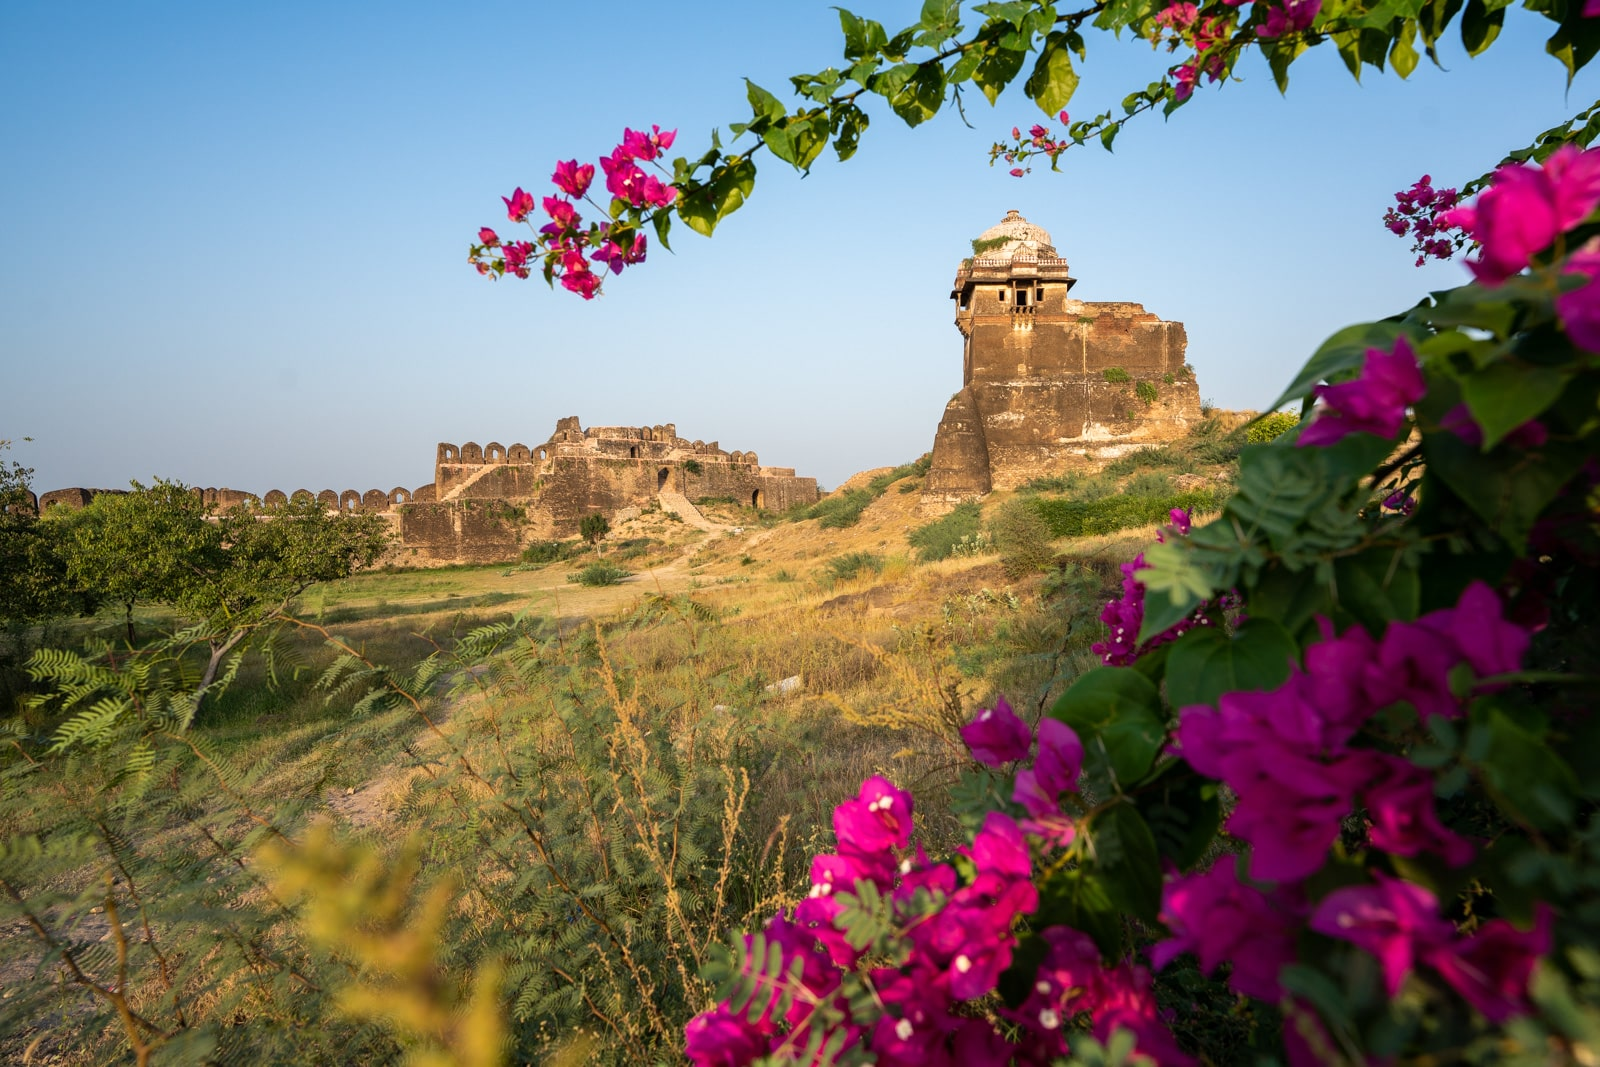 Reflections - Rohtas Fort in Pakistan at sunrise with magenta flowers - Lost With Purpose travel blog